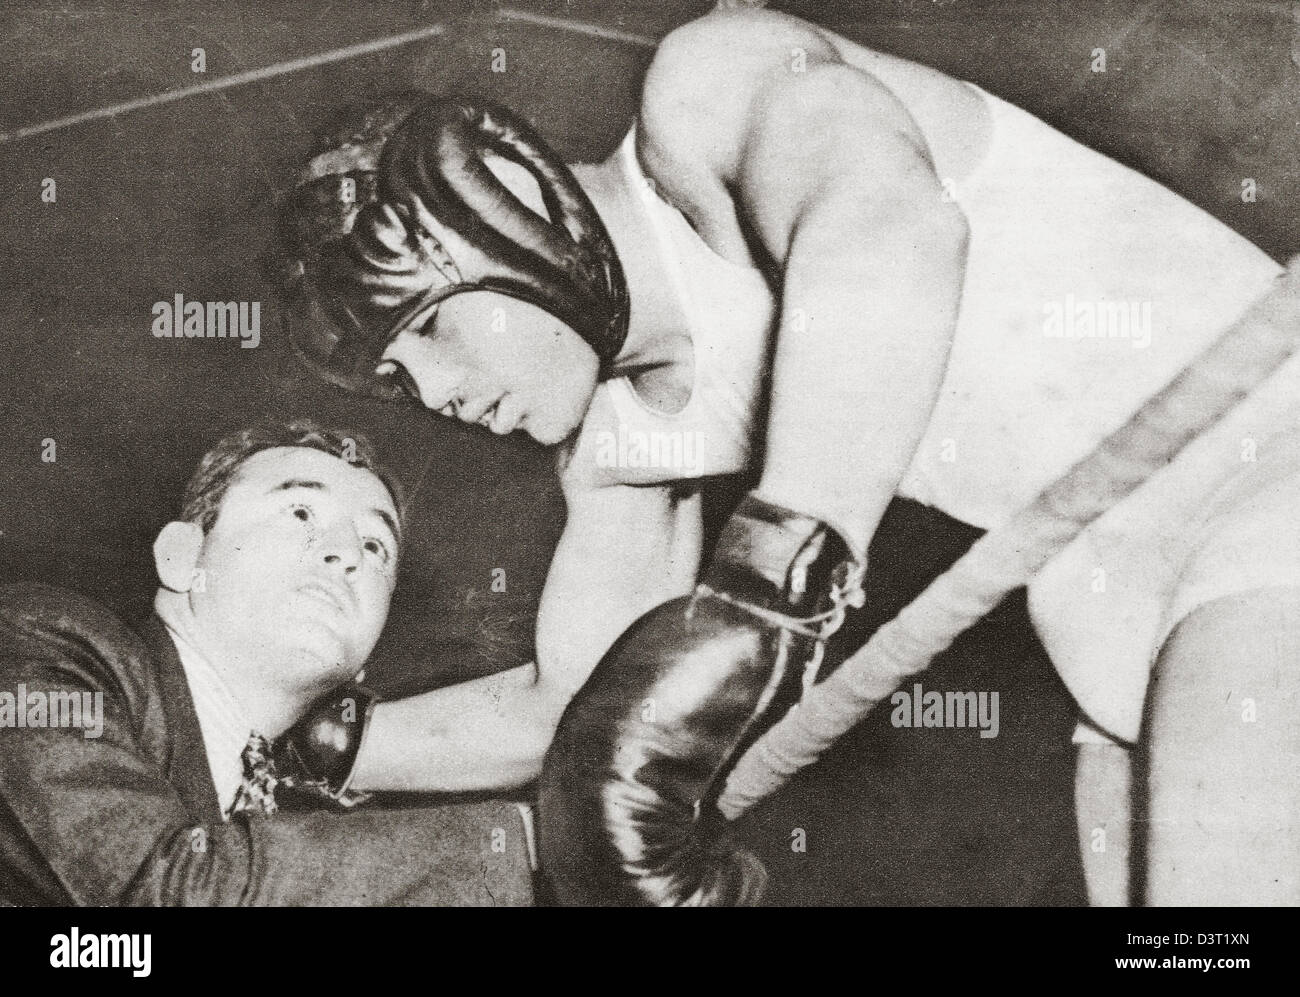 James Braddock, American heavyweight boxing champion, photographed here in 1938 - Stock Image